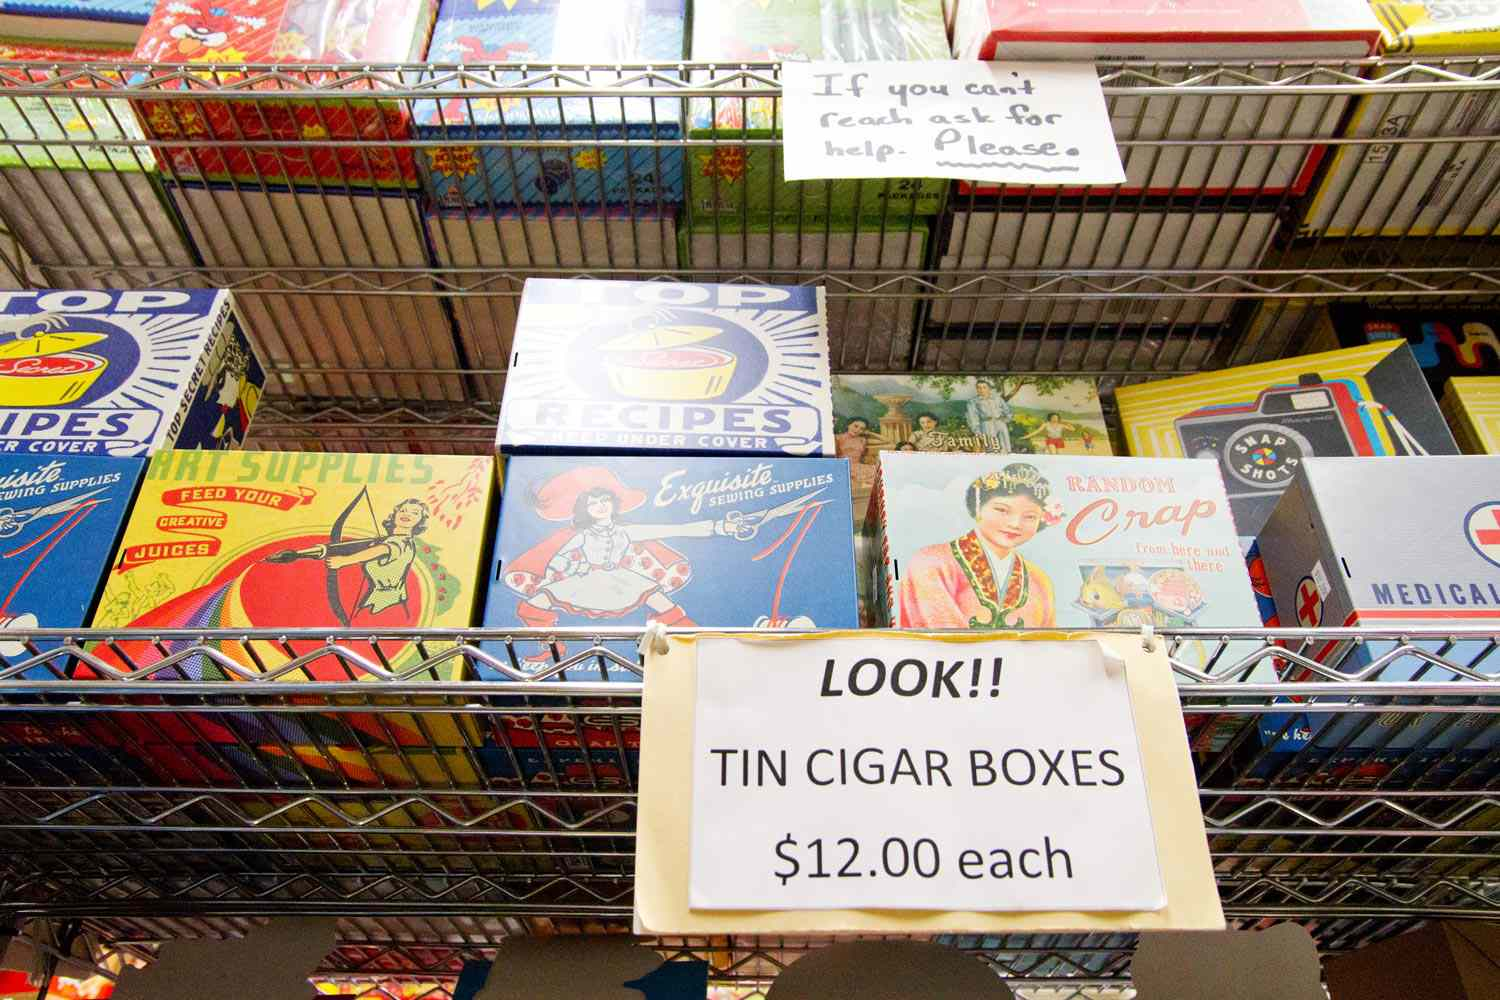 Candy cigar boxes